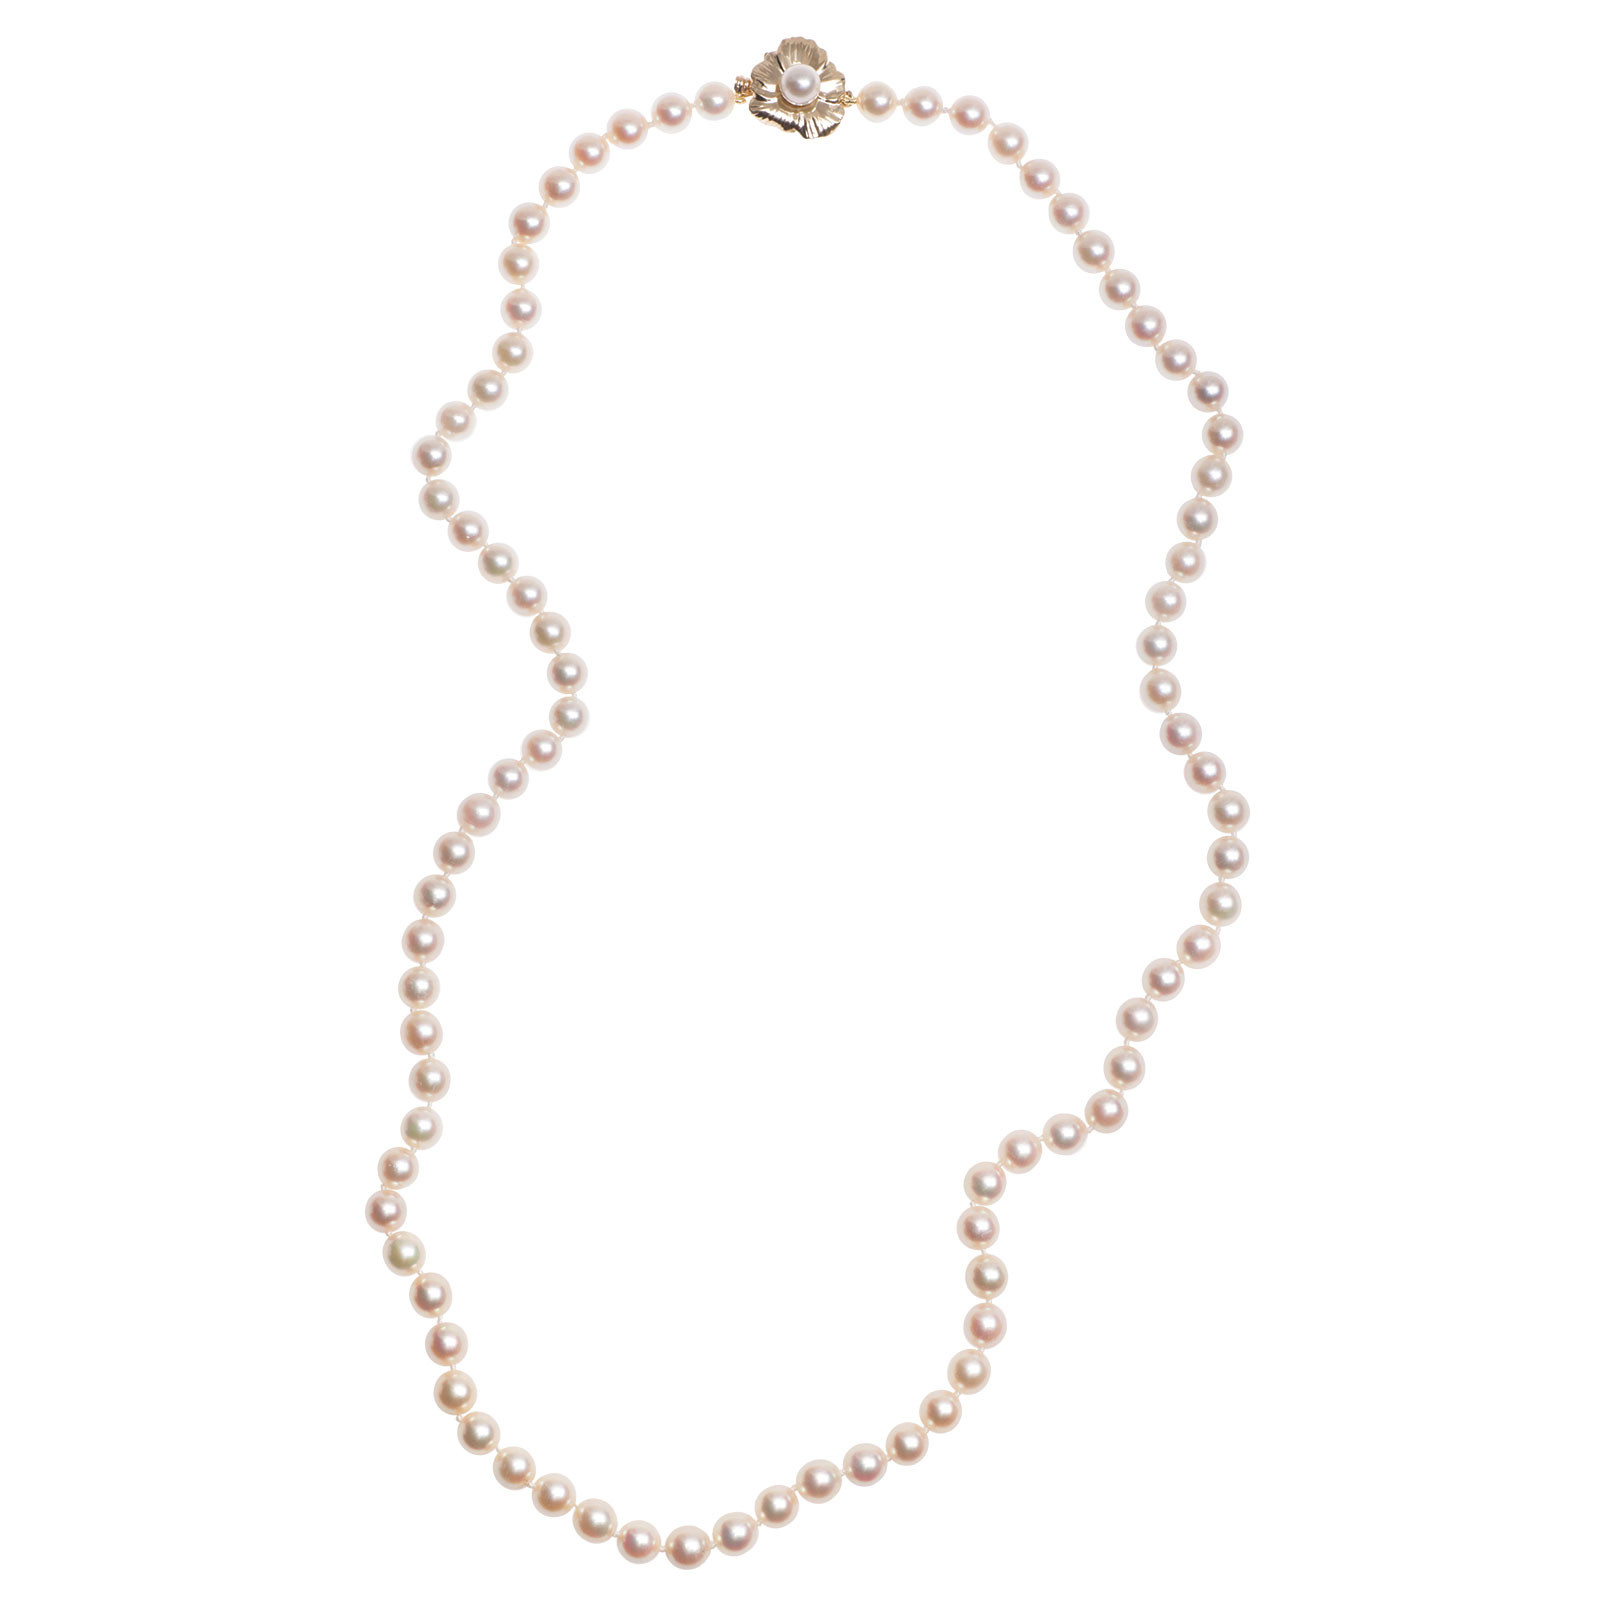 Vintage Akoya Pearl Necklace